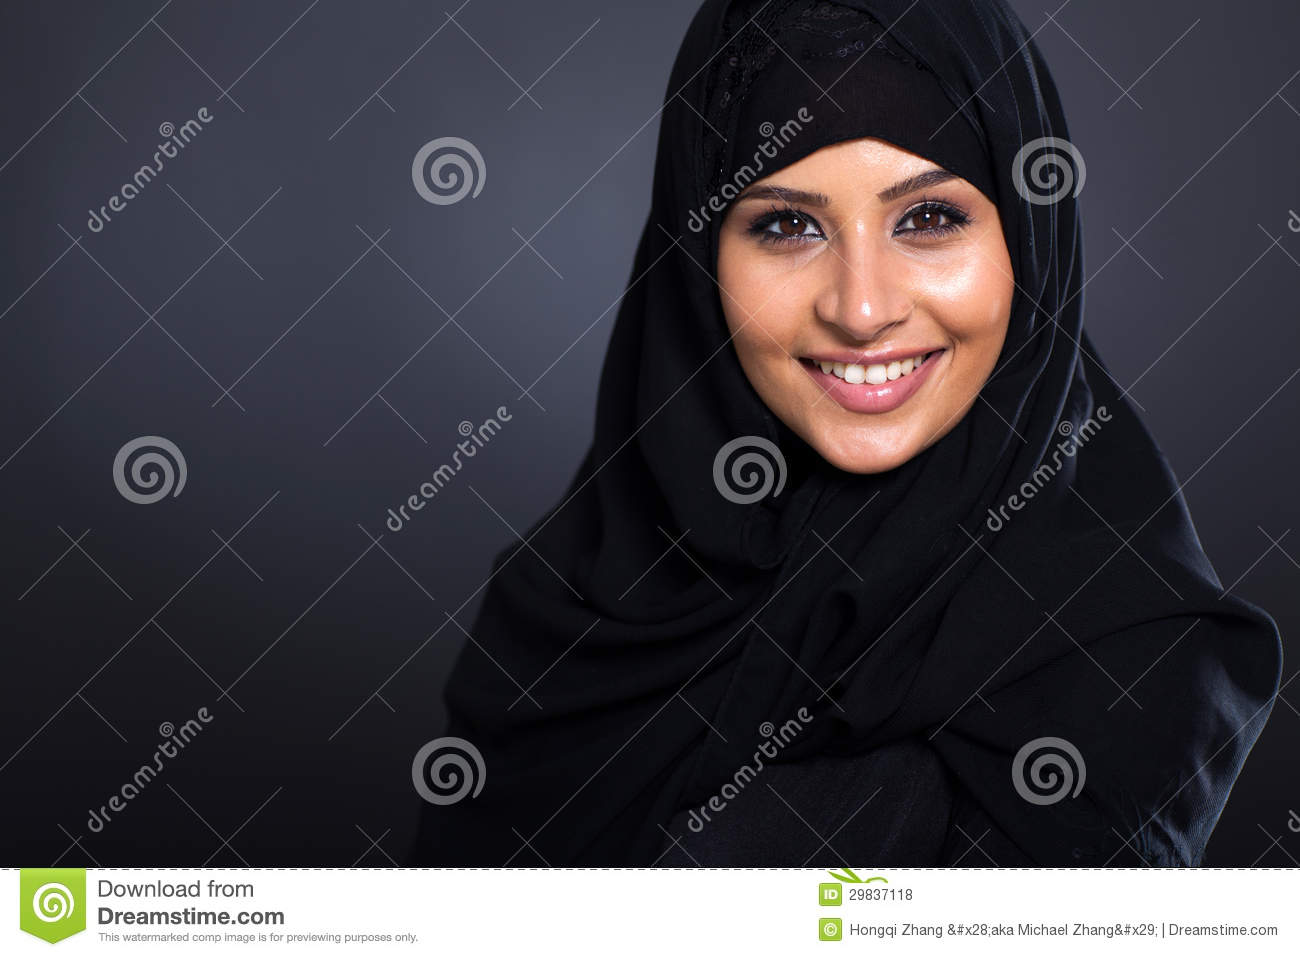 Smiling Arabic woman in traditional clothing on black background